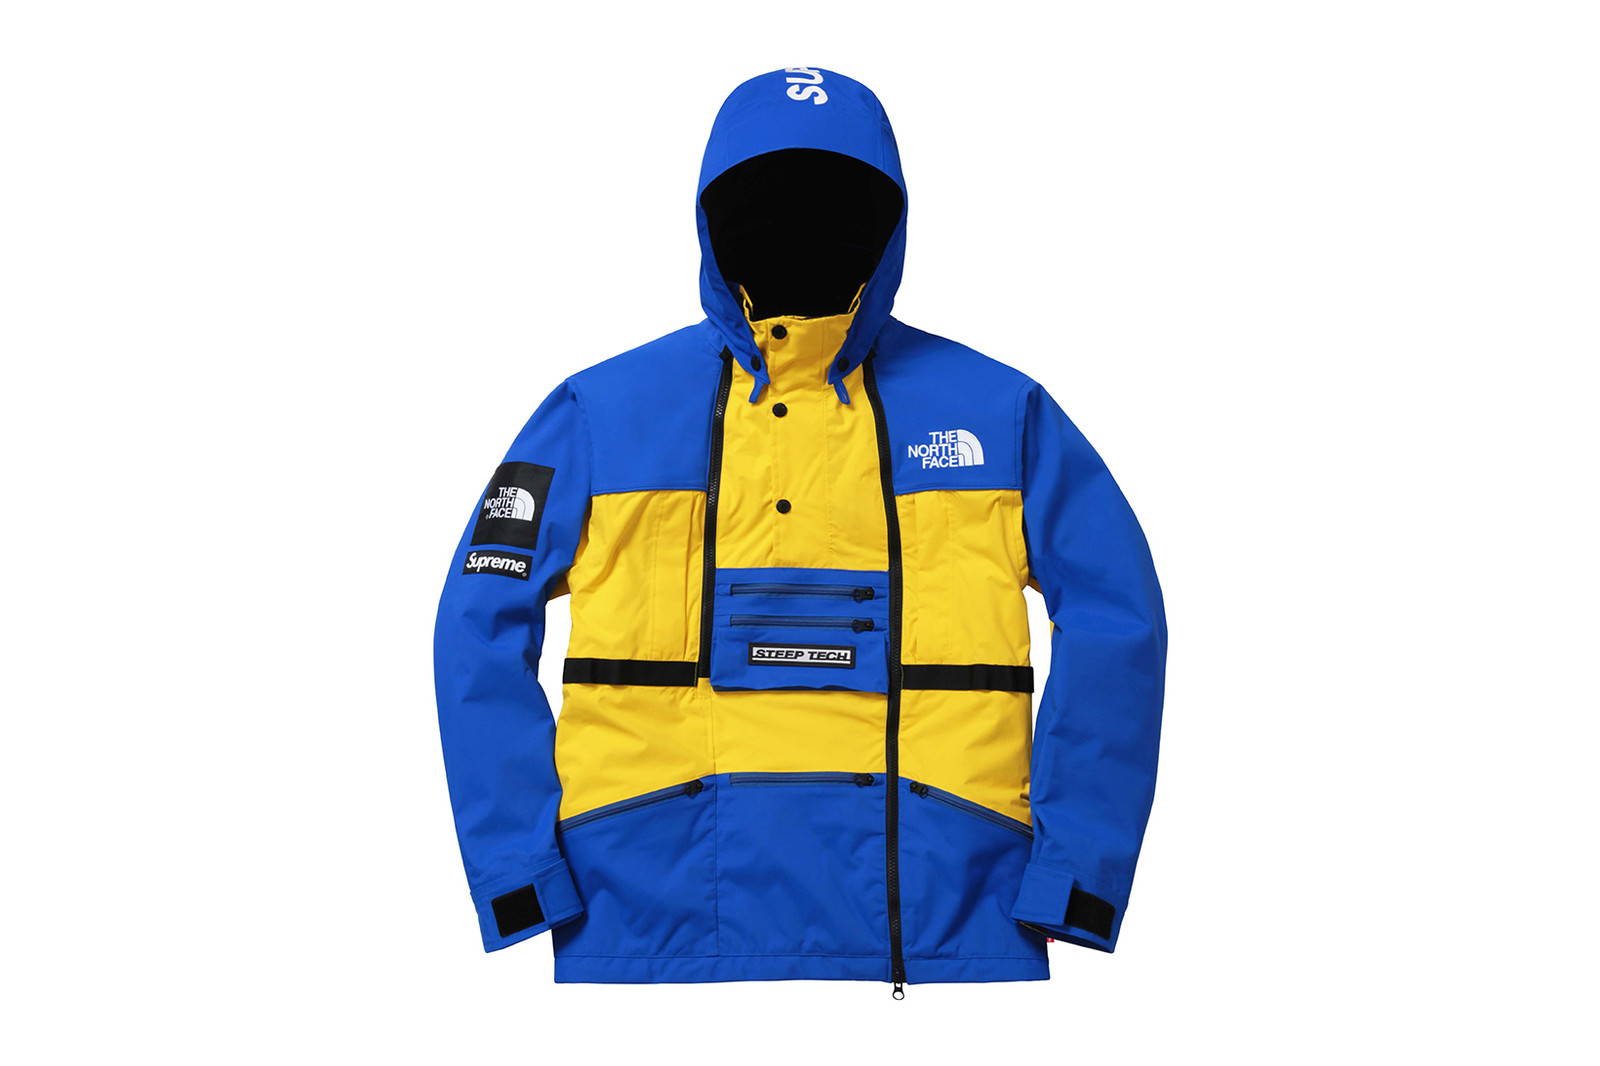 53fe5610ce Supreme x The North Face 2016 Spring Summer Steep Tech Collection ...